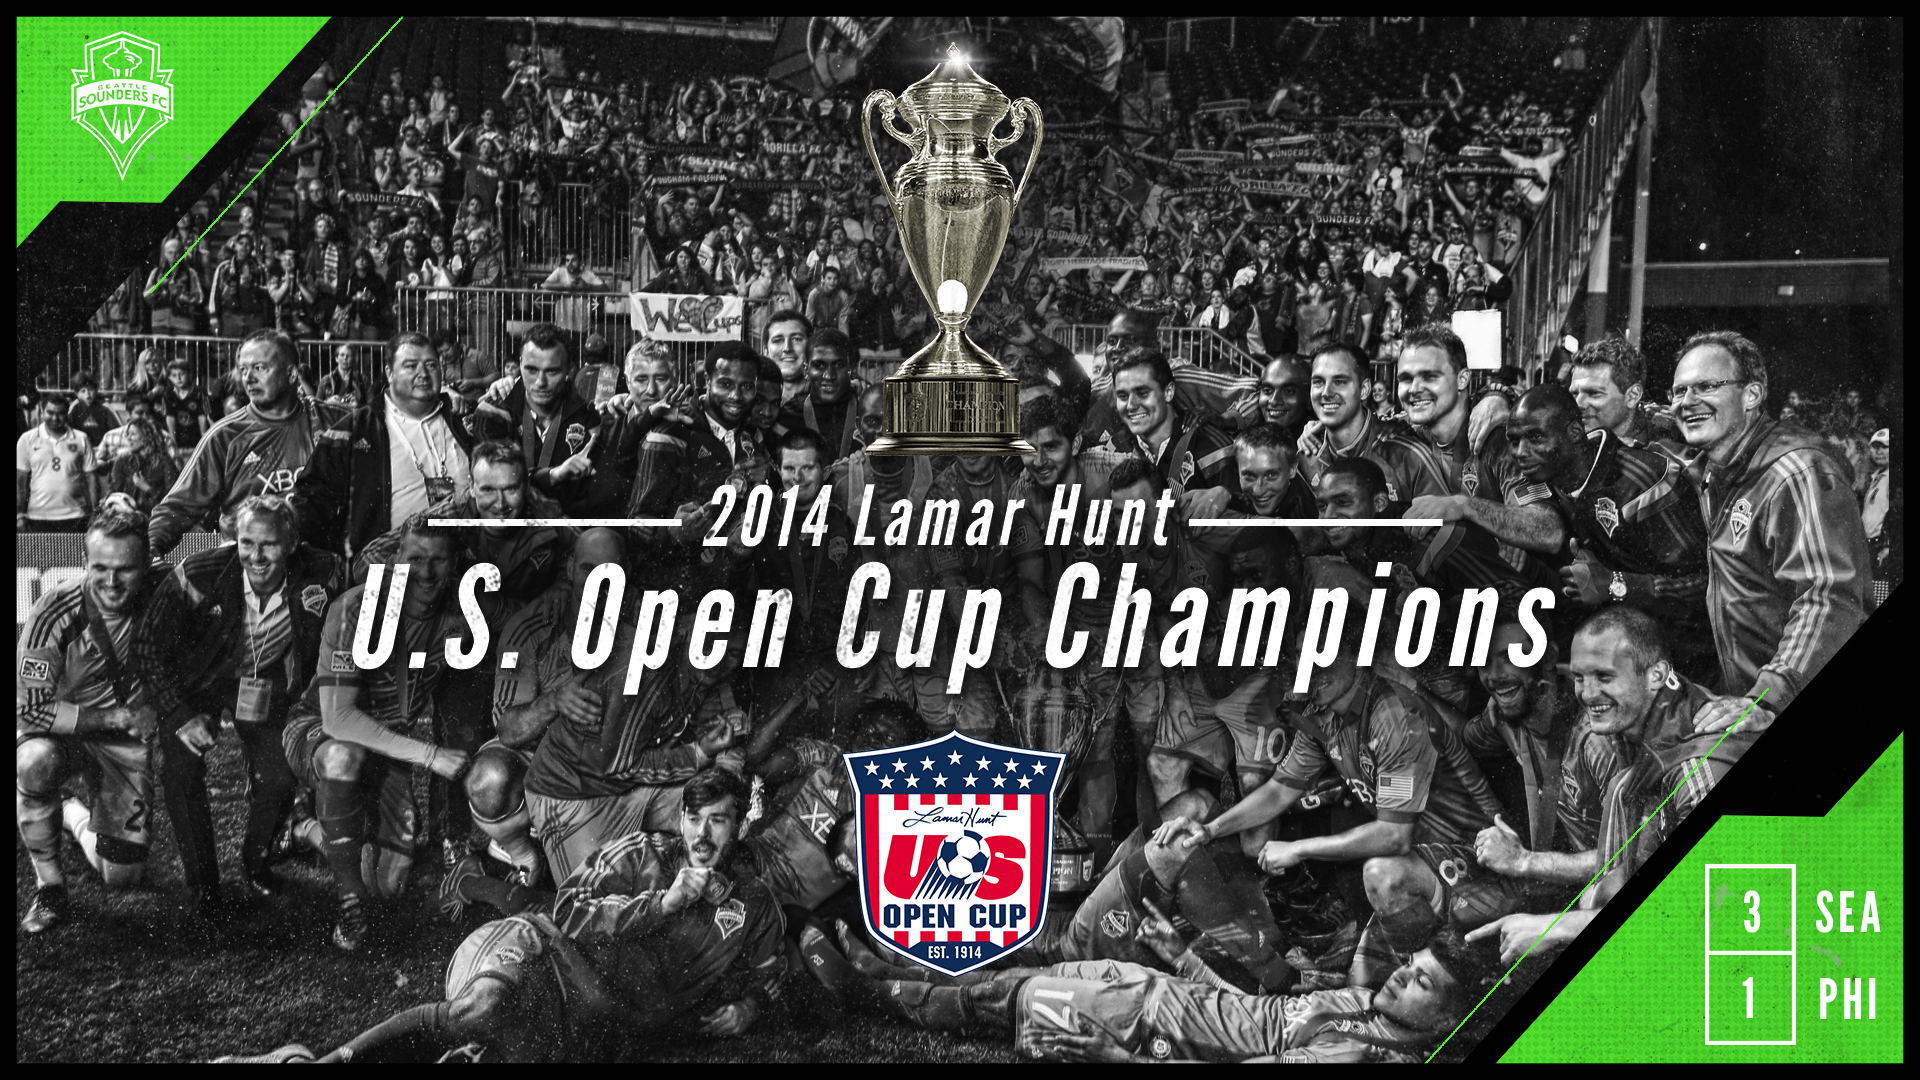 2014 U.S. Open Cup Champions! | Seattle Sounders FC